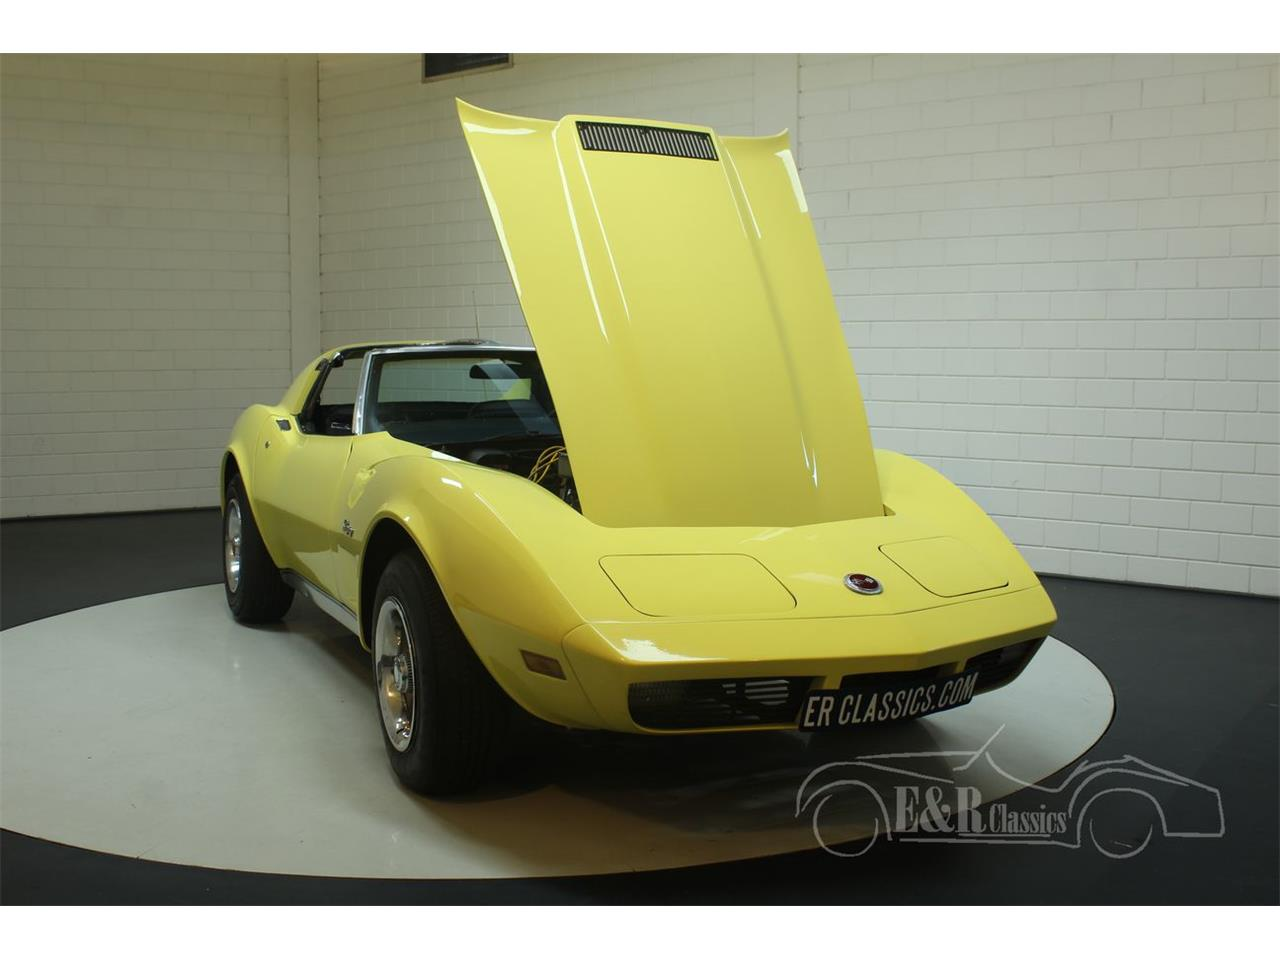 Large Picture of 1974 Chevrolet Corvette located in Waalwijk noord brabant - $34,292.00 Offered by E & R Classics - PFBT